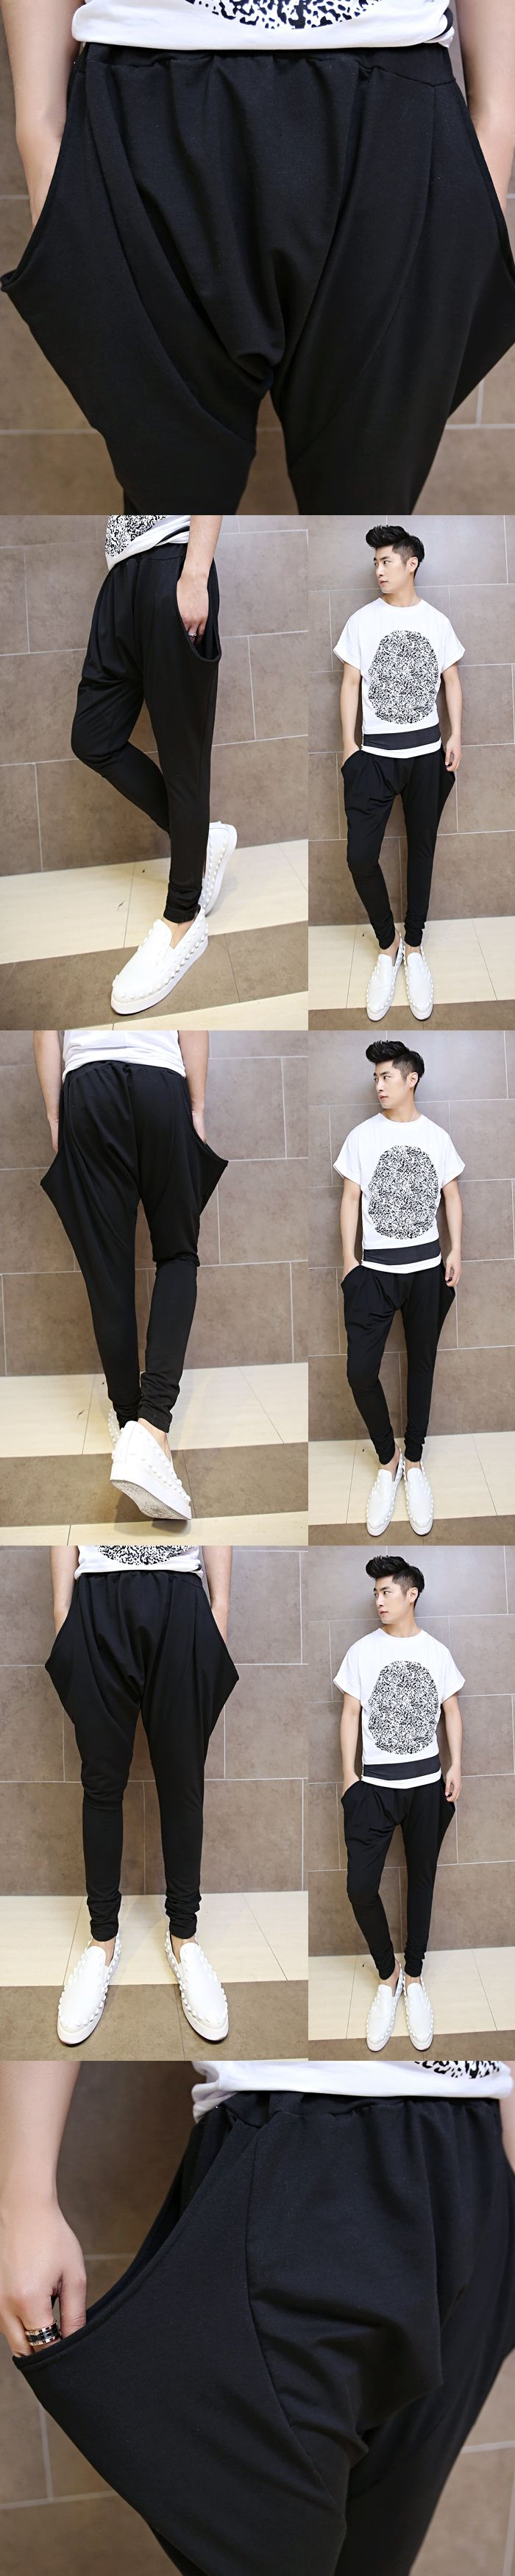 2017 men's new casual pants male Korean fashion personality harem pants hanging low crotch pants